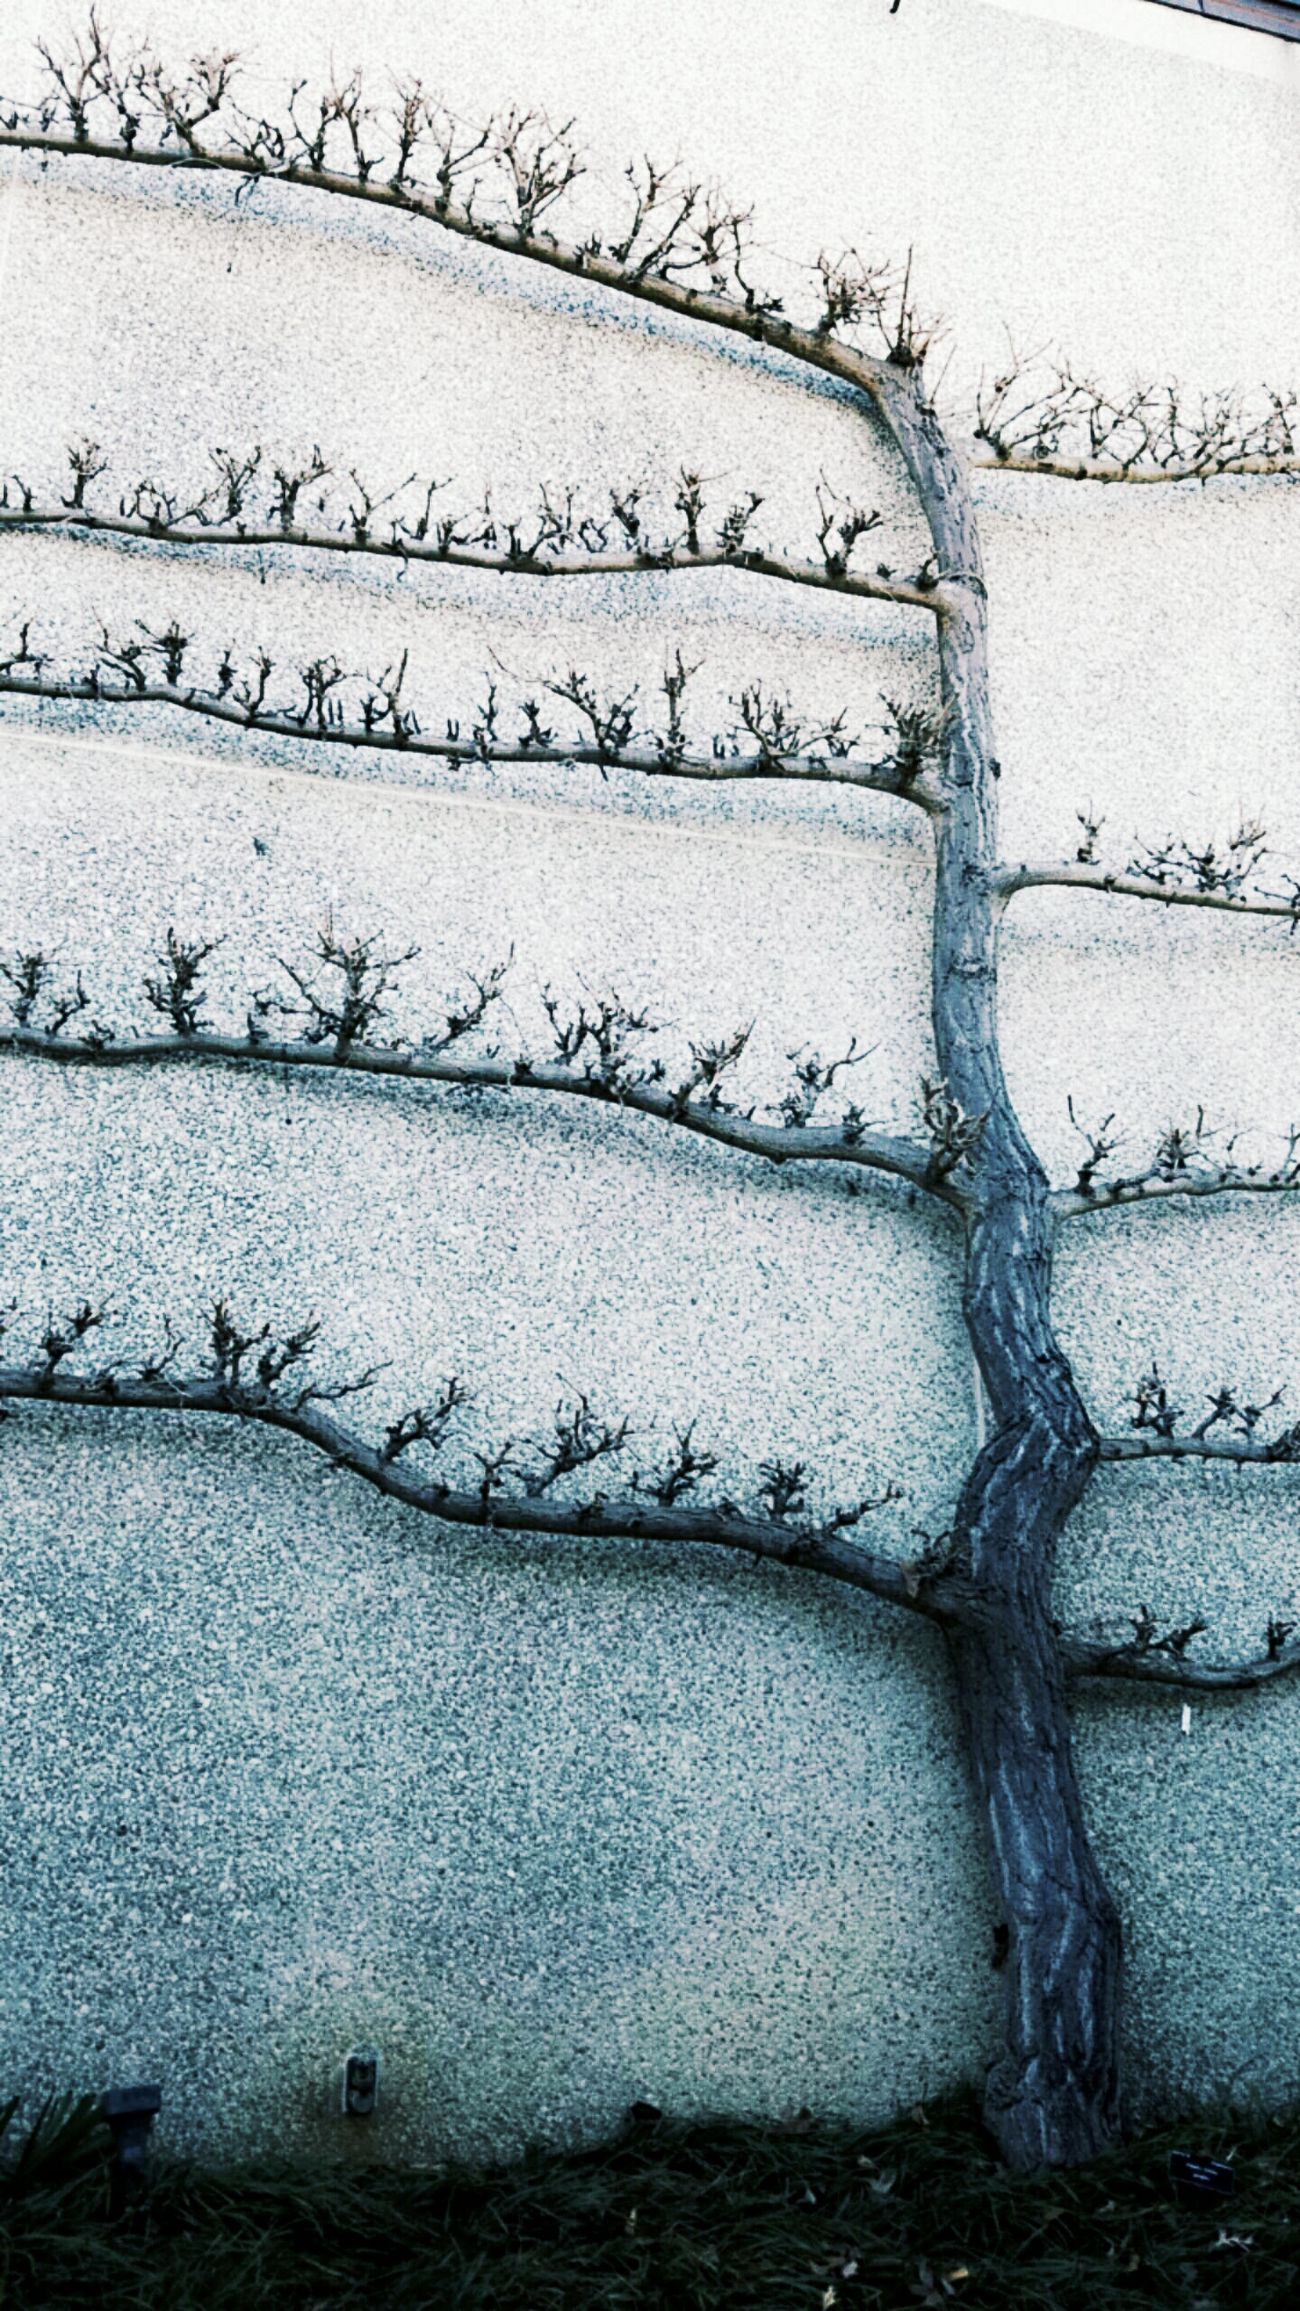 Tree No People Day Nature Garden Branches Beauty In Nature Bare Tree Branch Leaf Twigs Twigs And Branches Wall Close-up Outdoors Barren Landscape